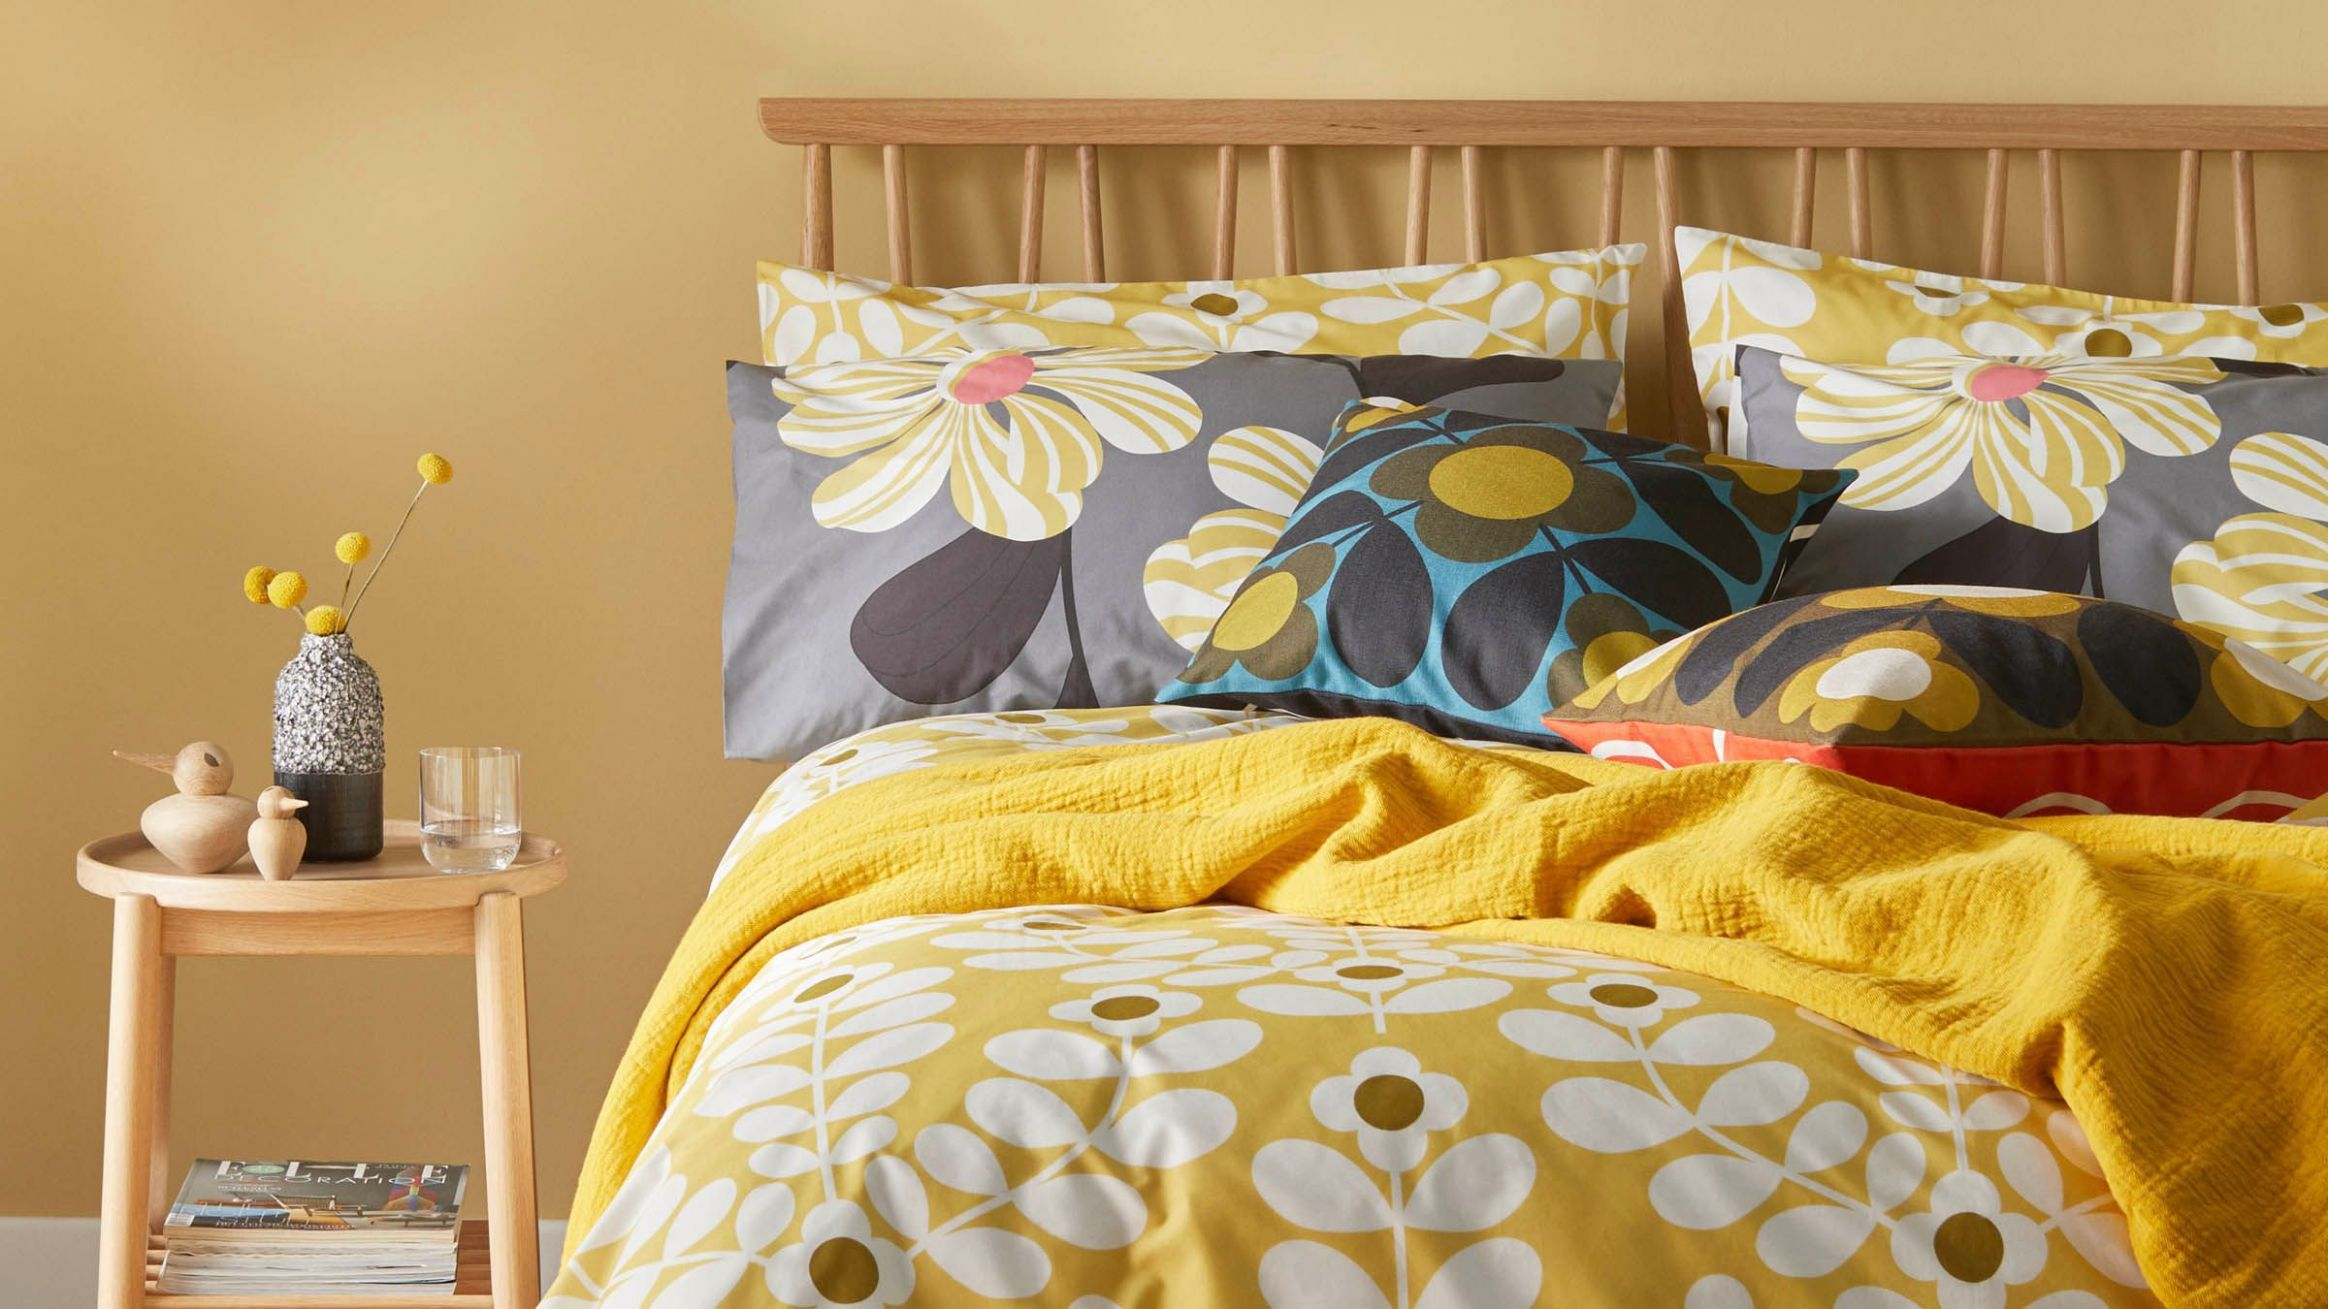 Bedding | Bed Sets and Bed Linen | John Lewis & Partners - bedroom ideas john lewis